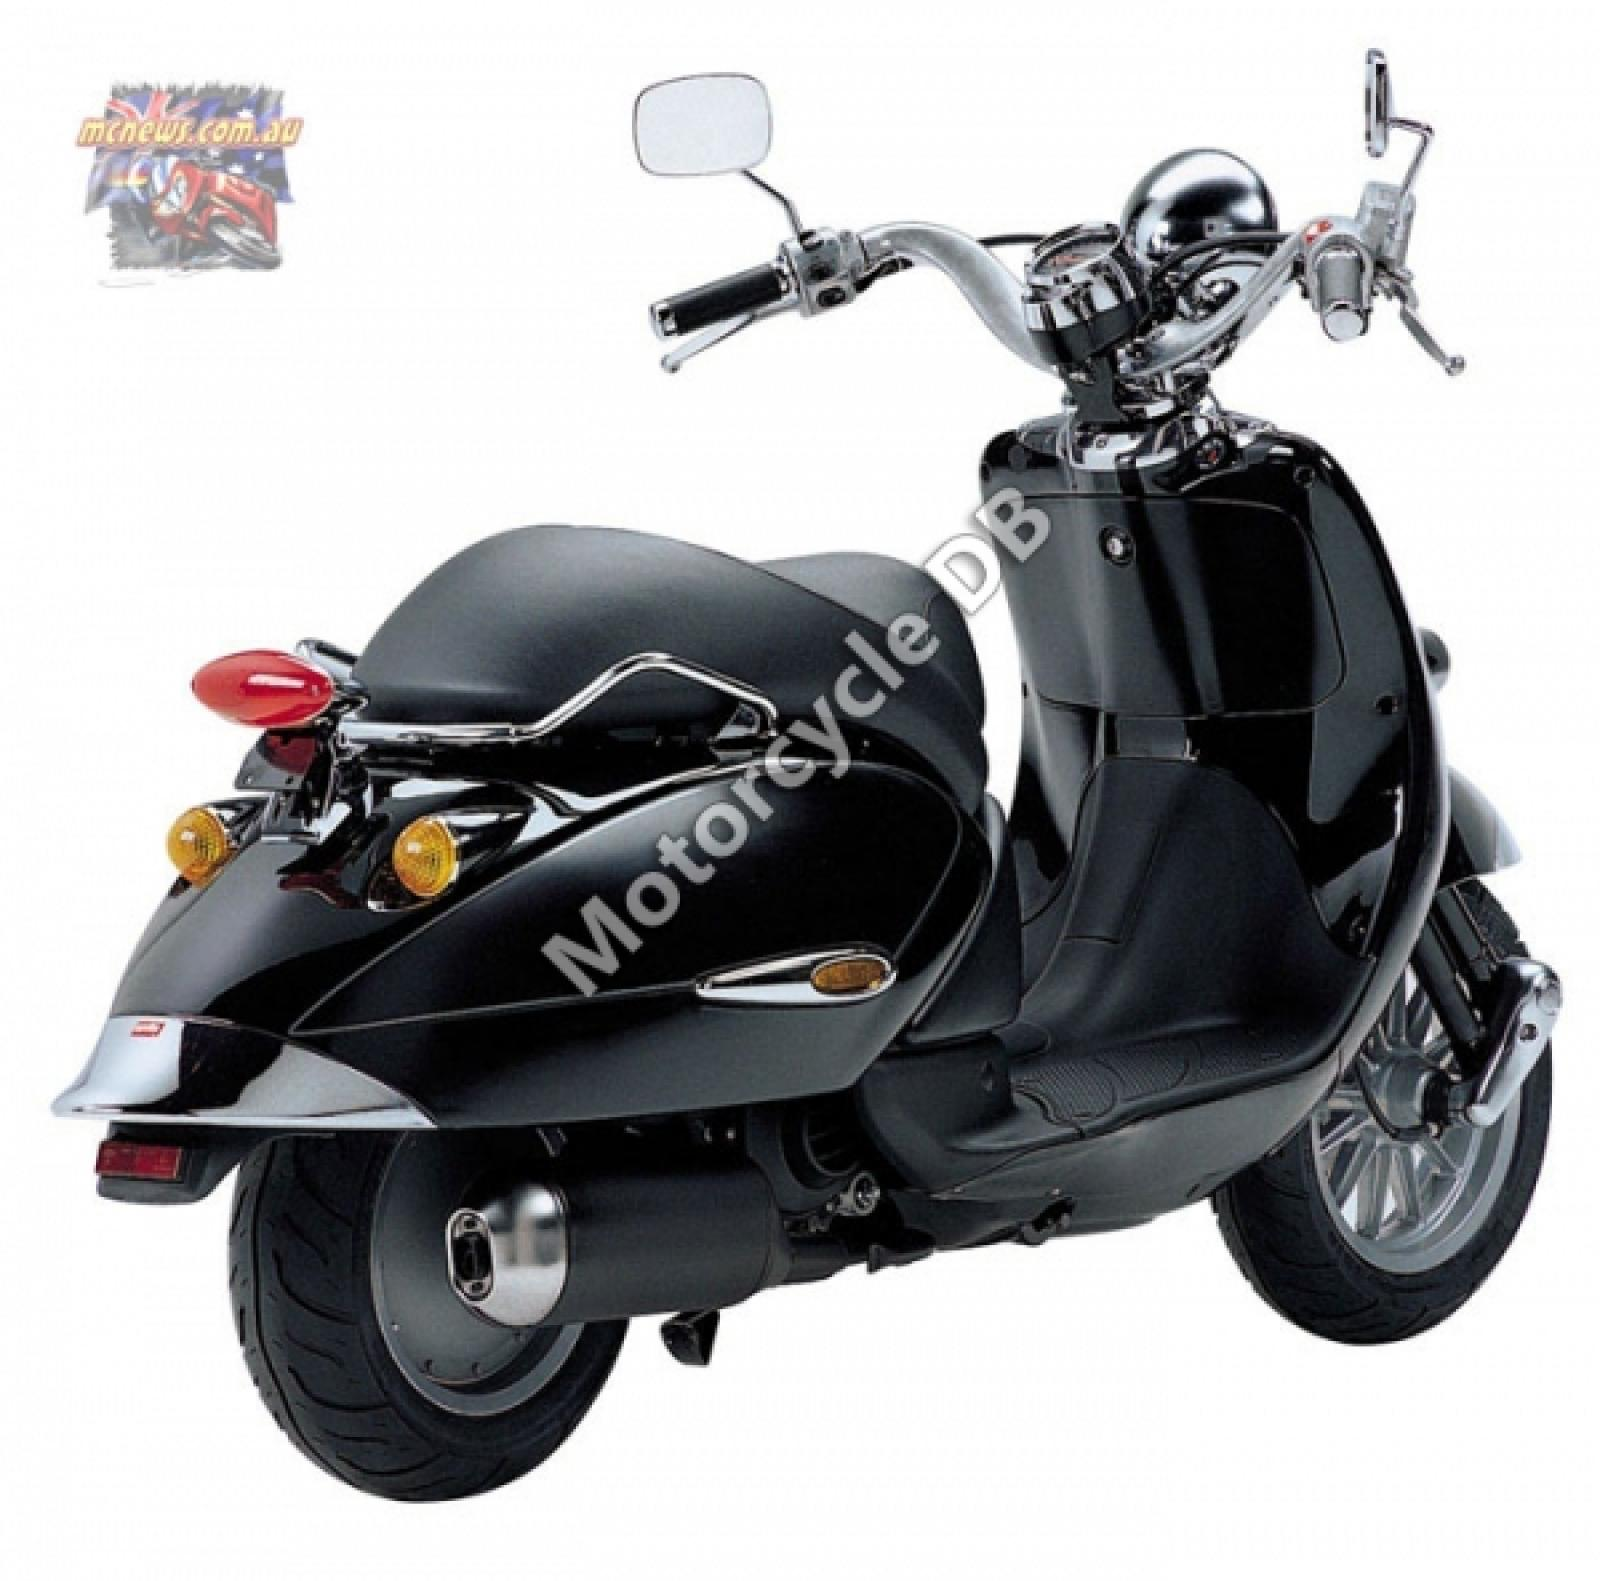 Kymco Hipster 150 images #101871